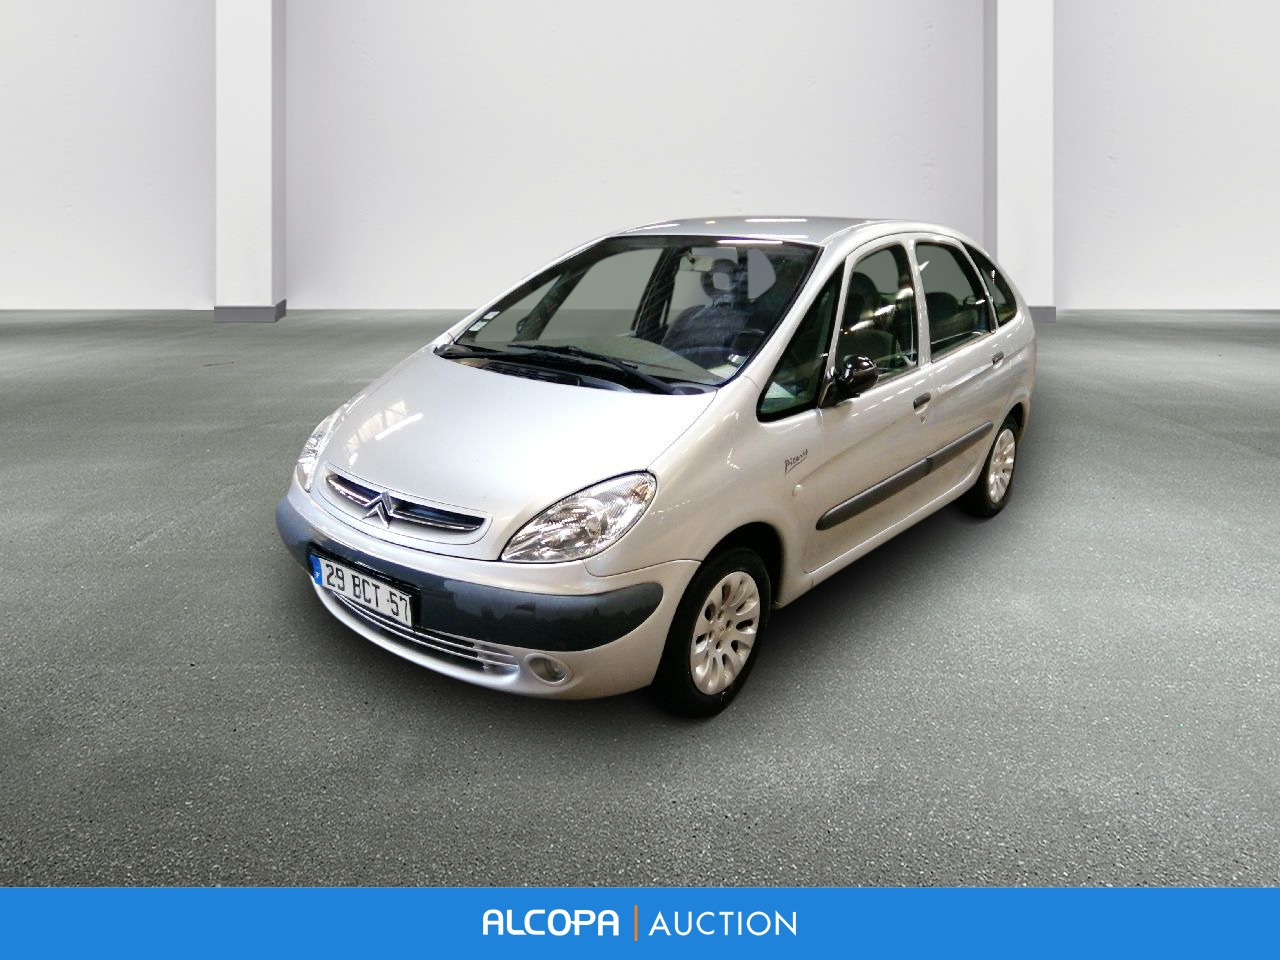 citroen xsara picasso xsara picasso 2 0 hdi 90 pack style alcopa auction. Black Bedroom Furniture Sets. Home Design Ideas